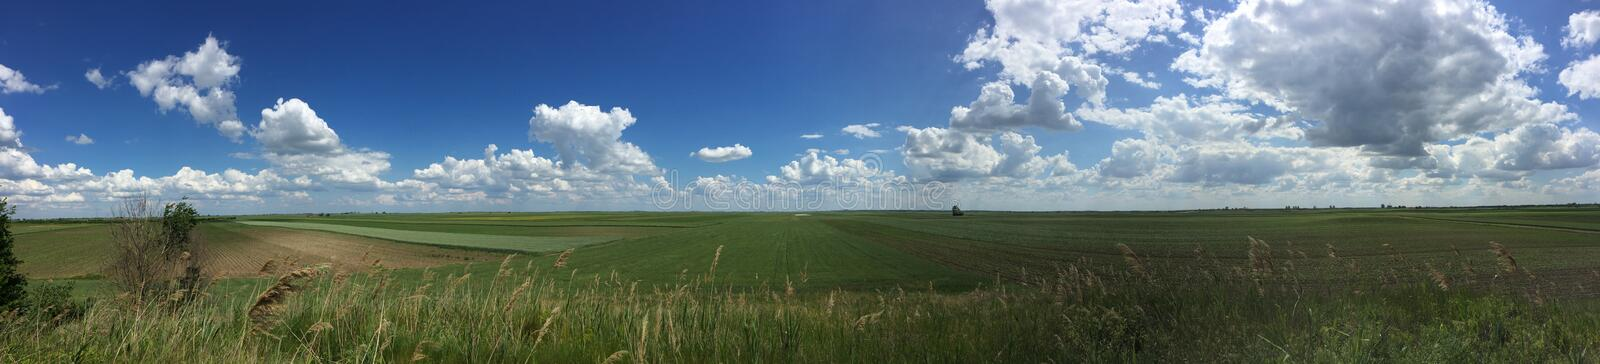 Panorama of a field stock photo